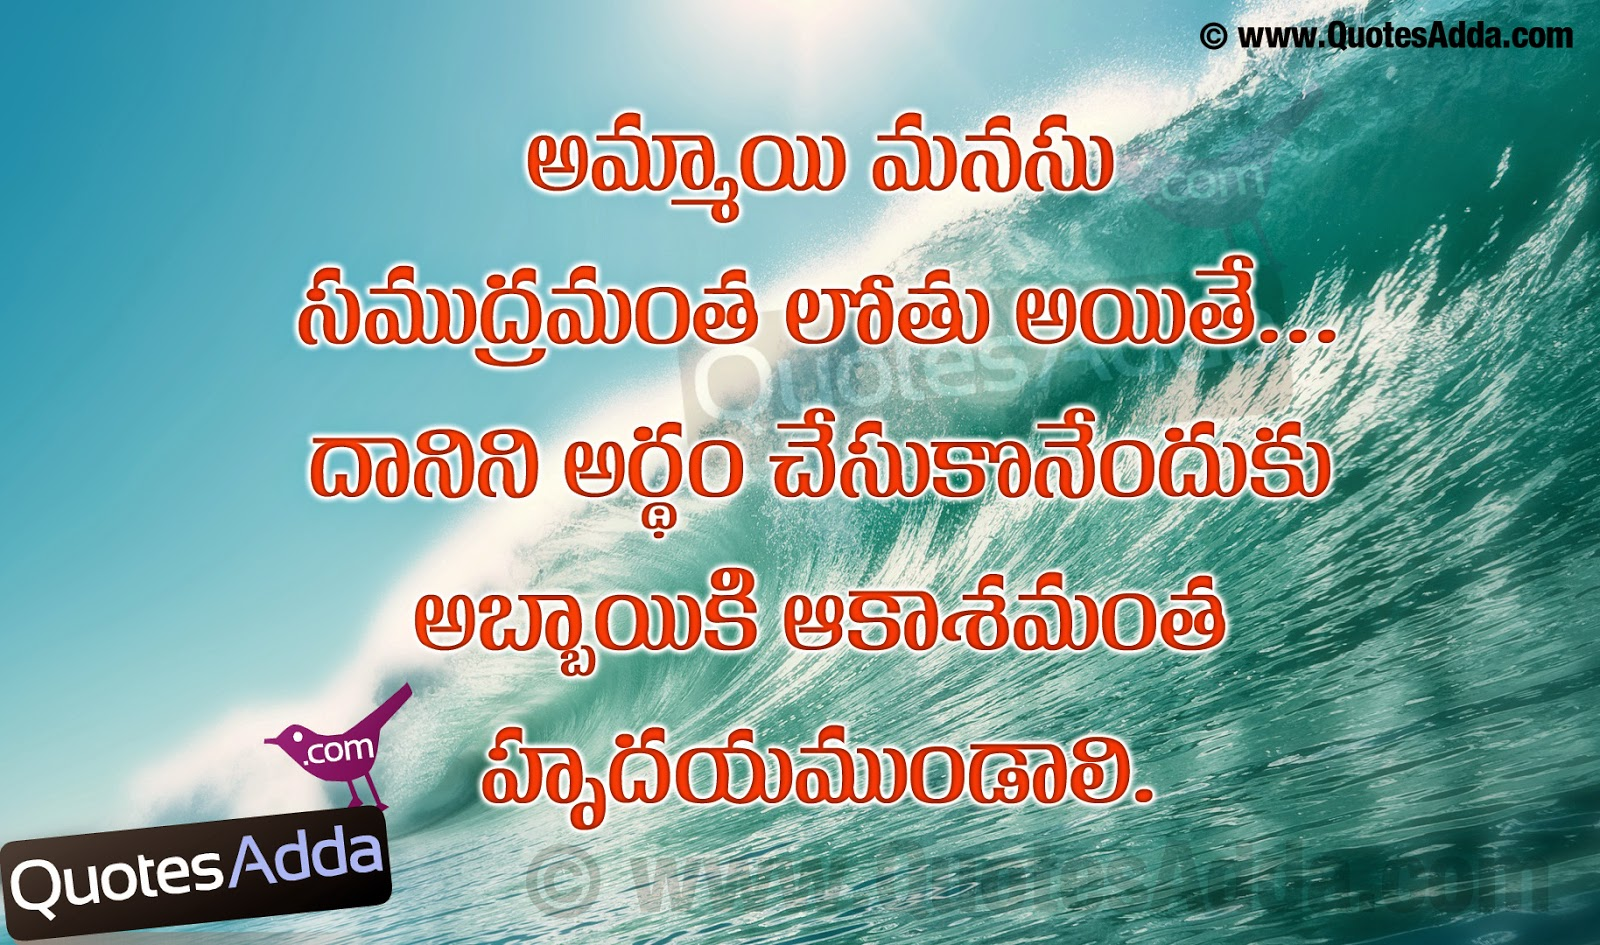 Telugu Love Quotes Beauteous Telugunewlovequotationsjun29Quotesadda 1600×945